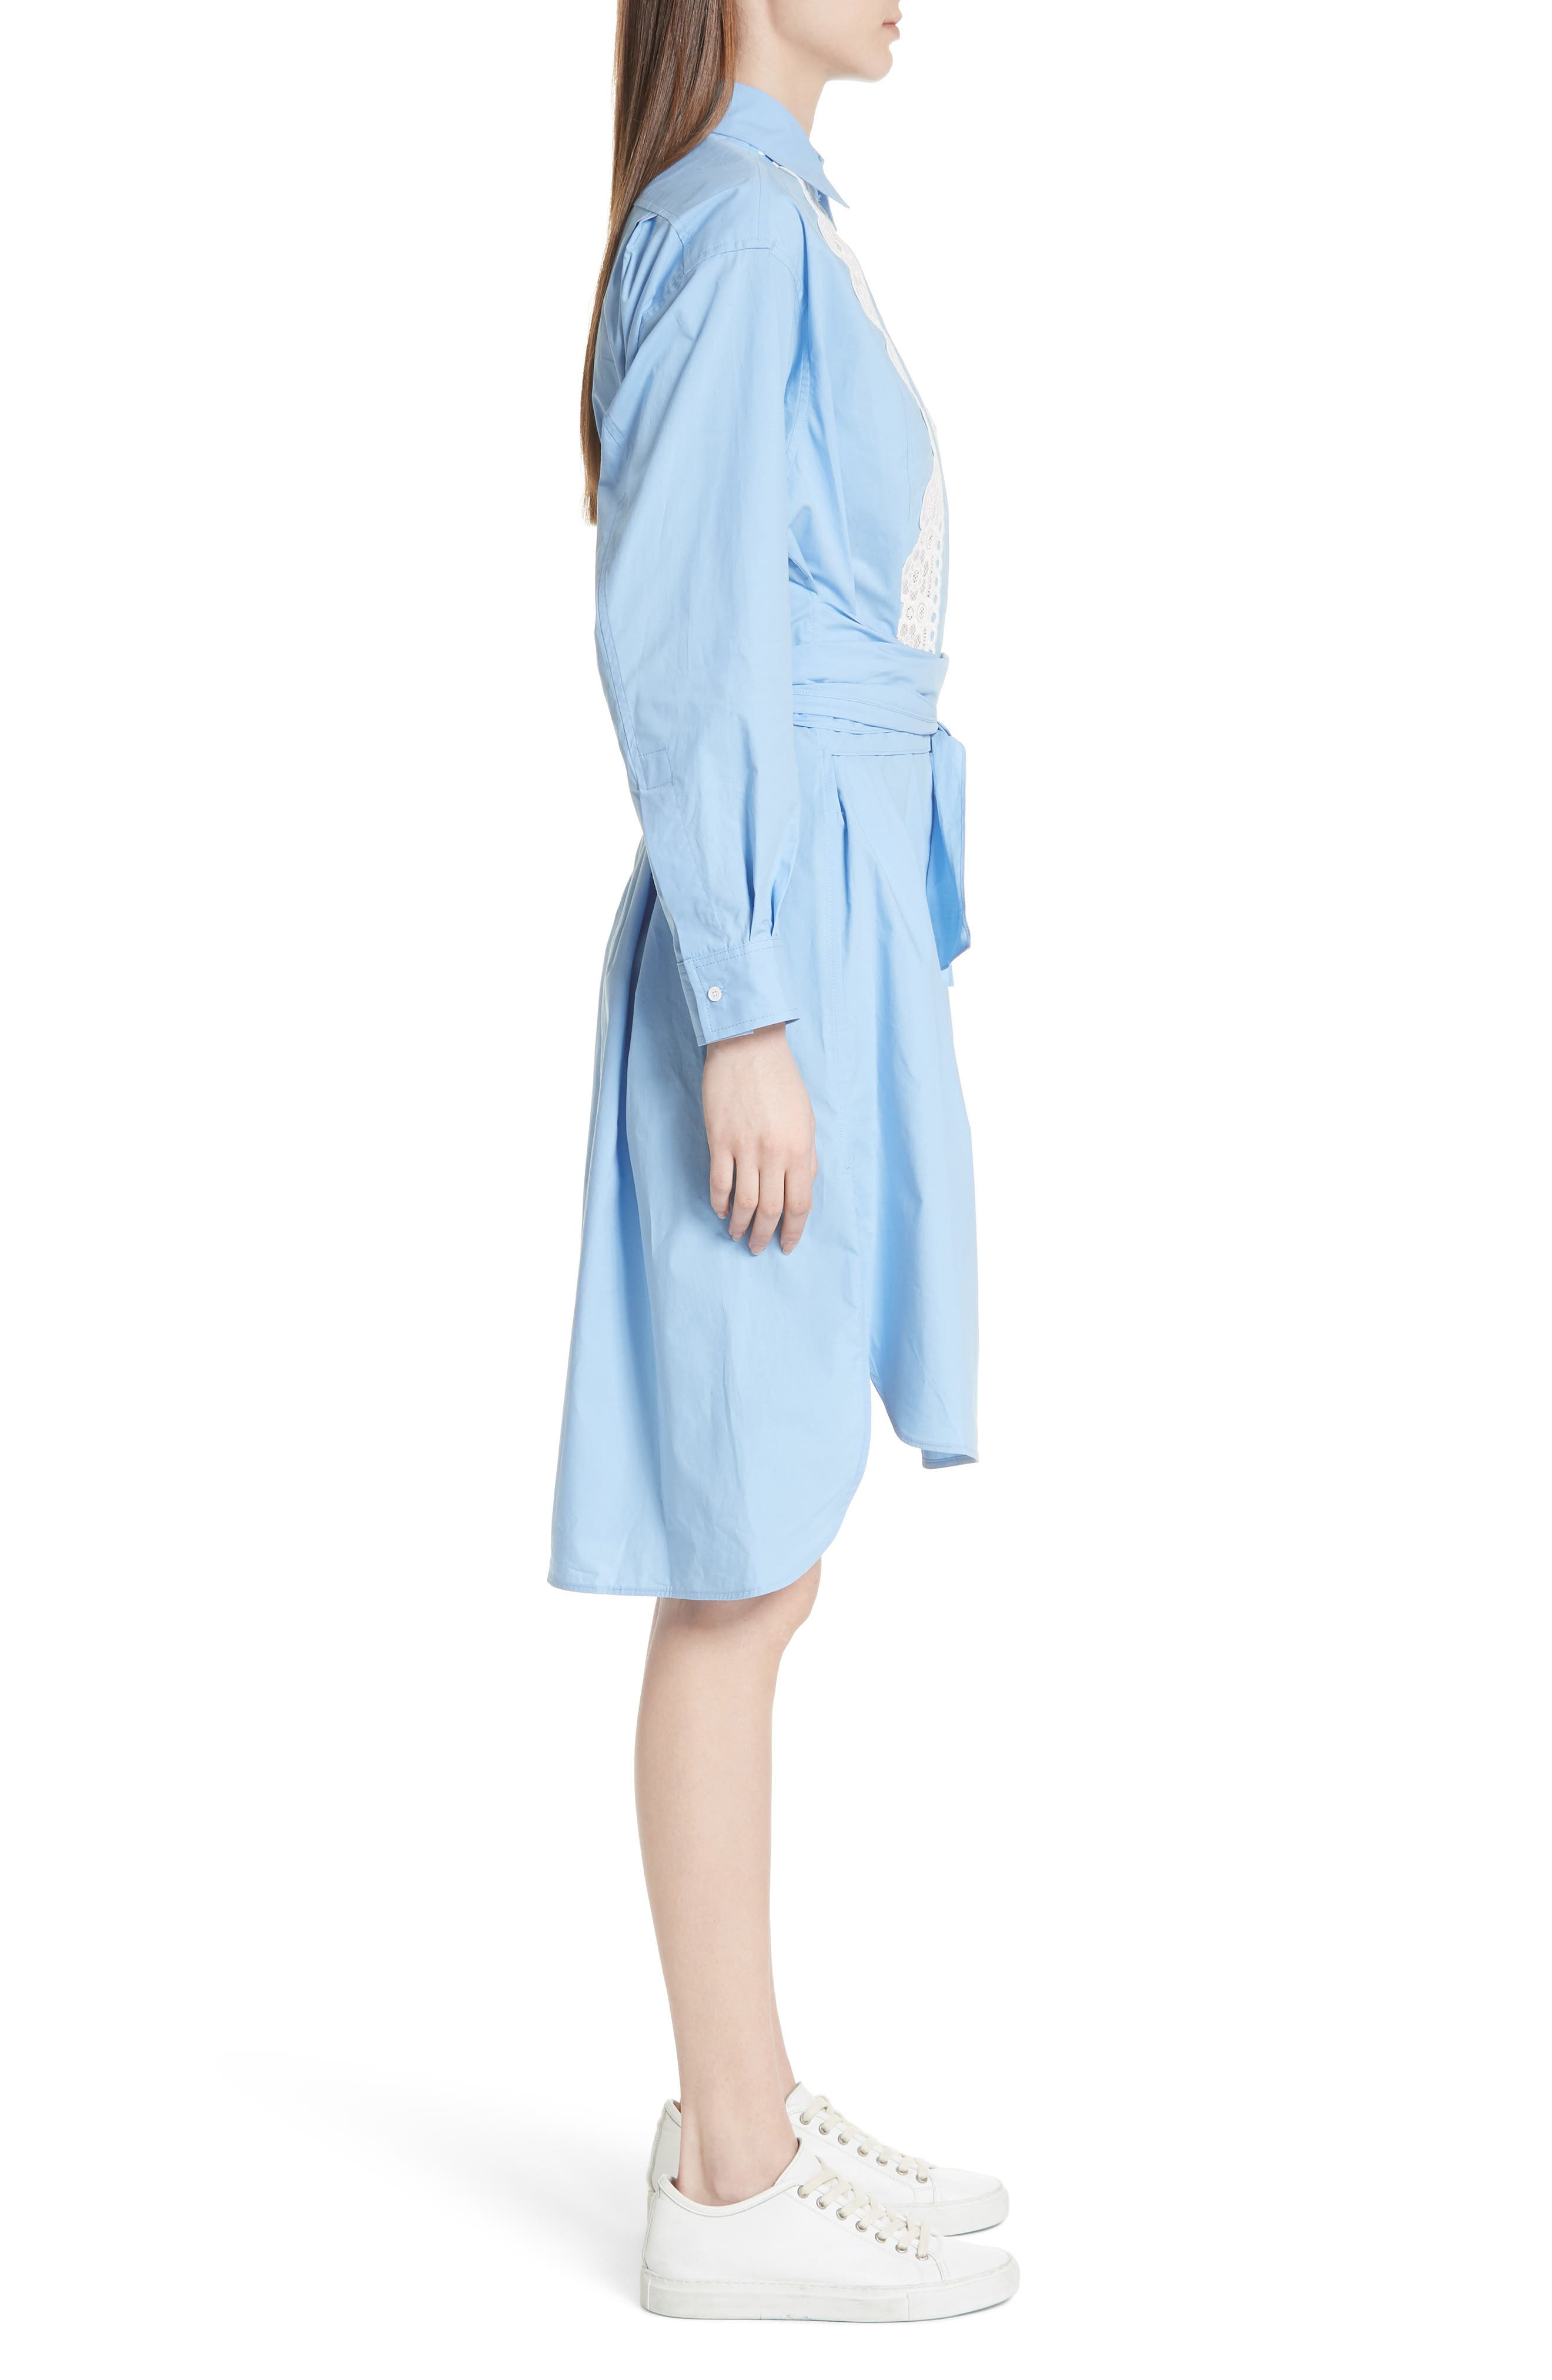 Bleu Ciel Cotton Shirtdress,                             Alternate thumbnail 3, color,